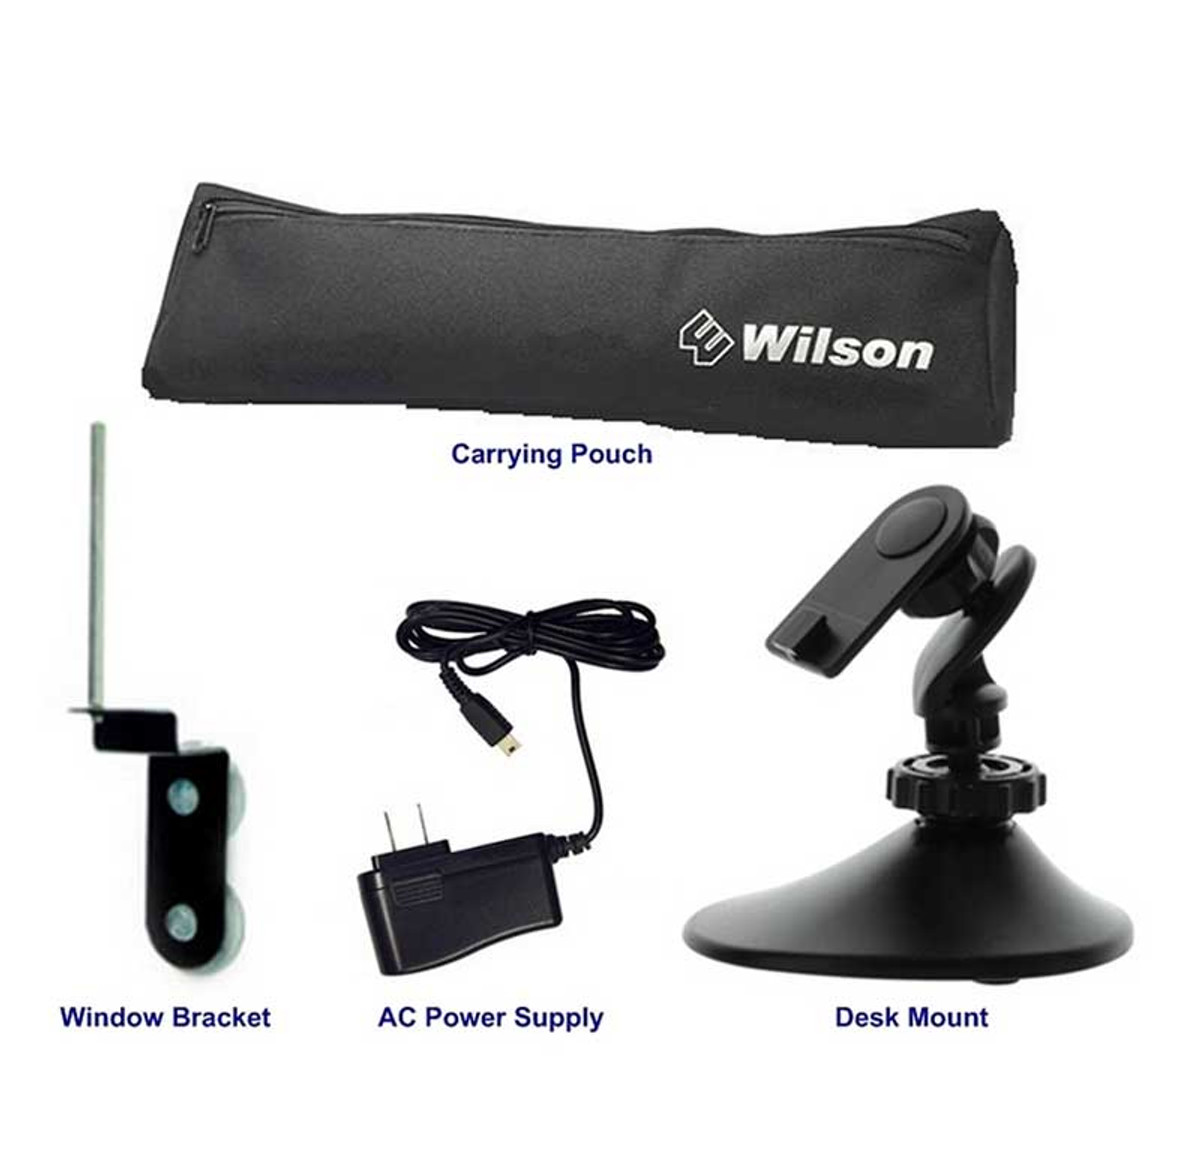 Wilson 859970 Home & Office Accessory Kit for use with Sleek amplifiers, window suction cup mount for magnet-mount antenna, 5V AC power supply, zippered carrying case, and adjustable desk mount